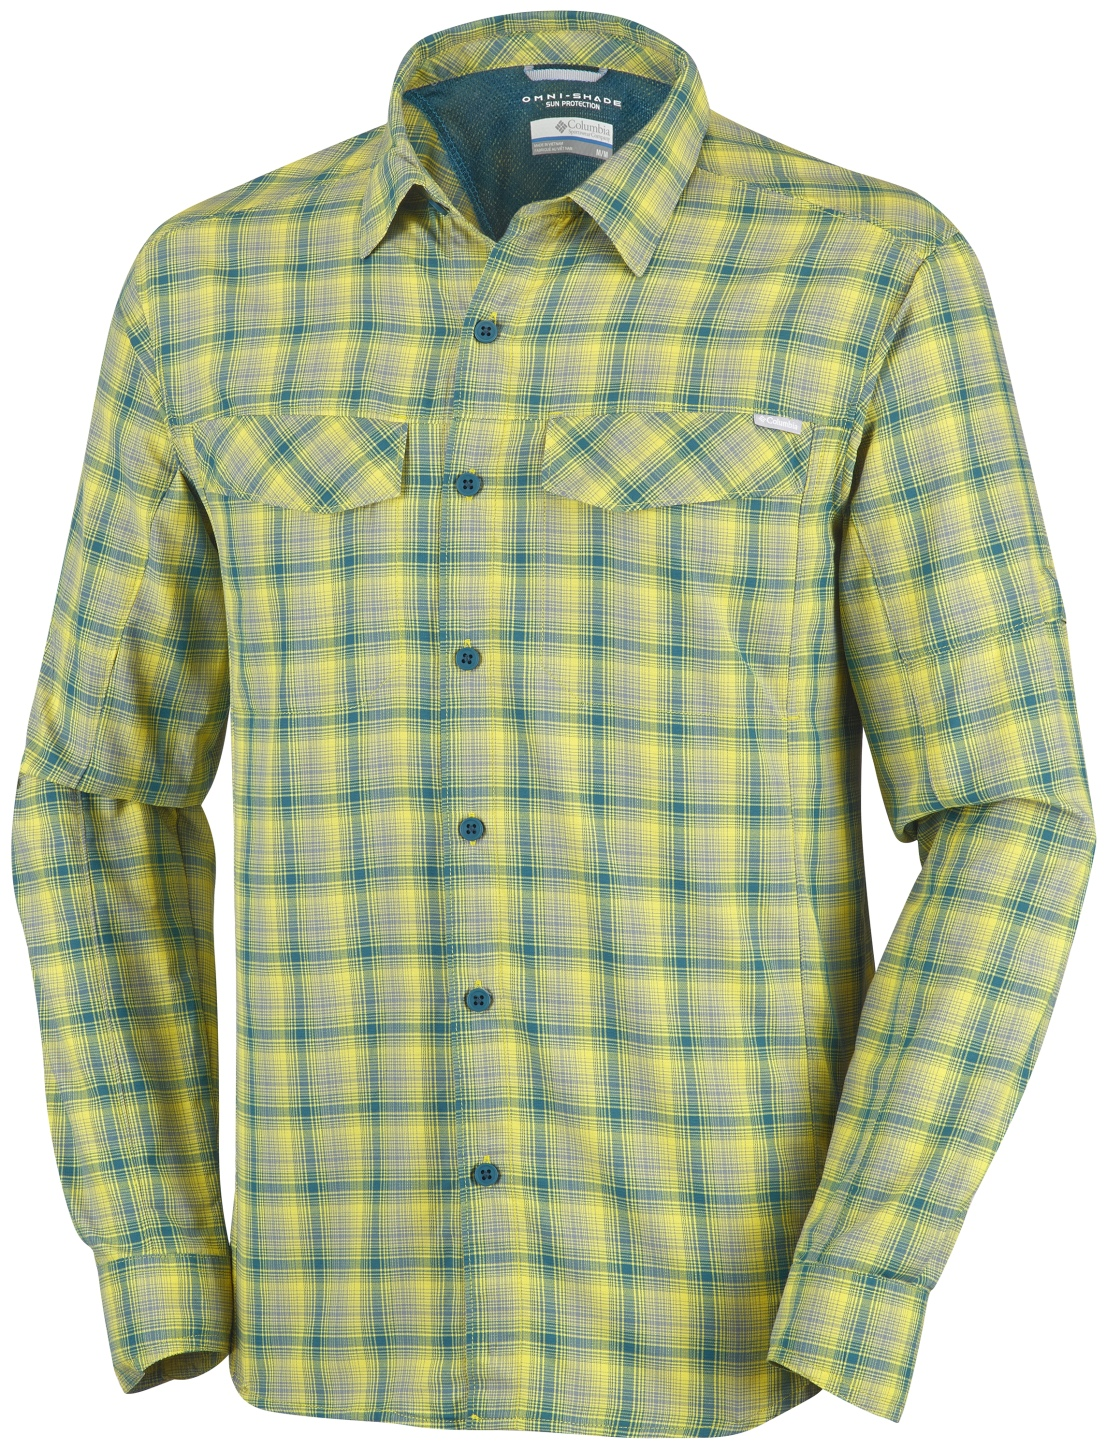 08d99958555 Columbia Men's Silver Ridge Plaid Long Sleeve Shirt Mineral Yellow - us